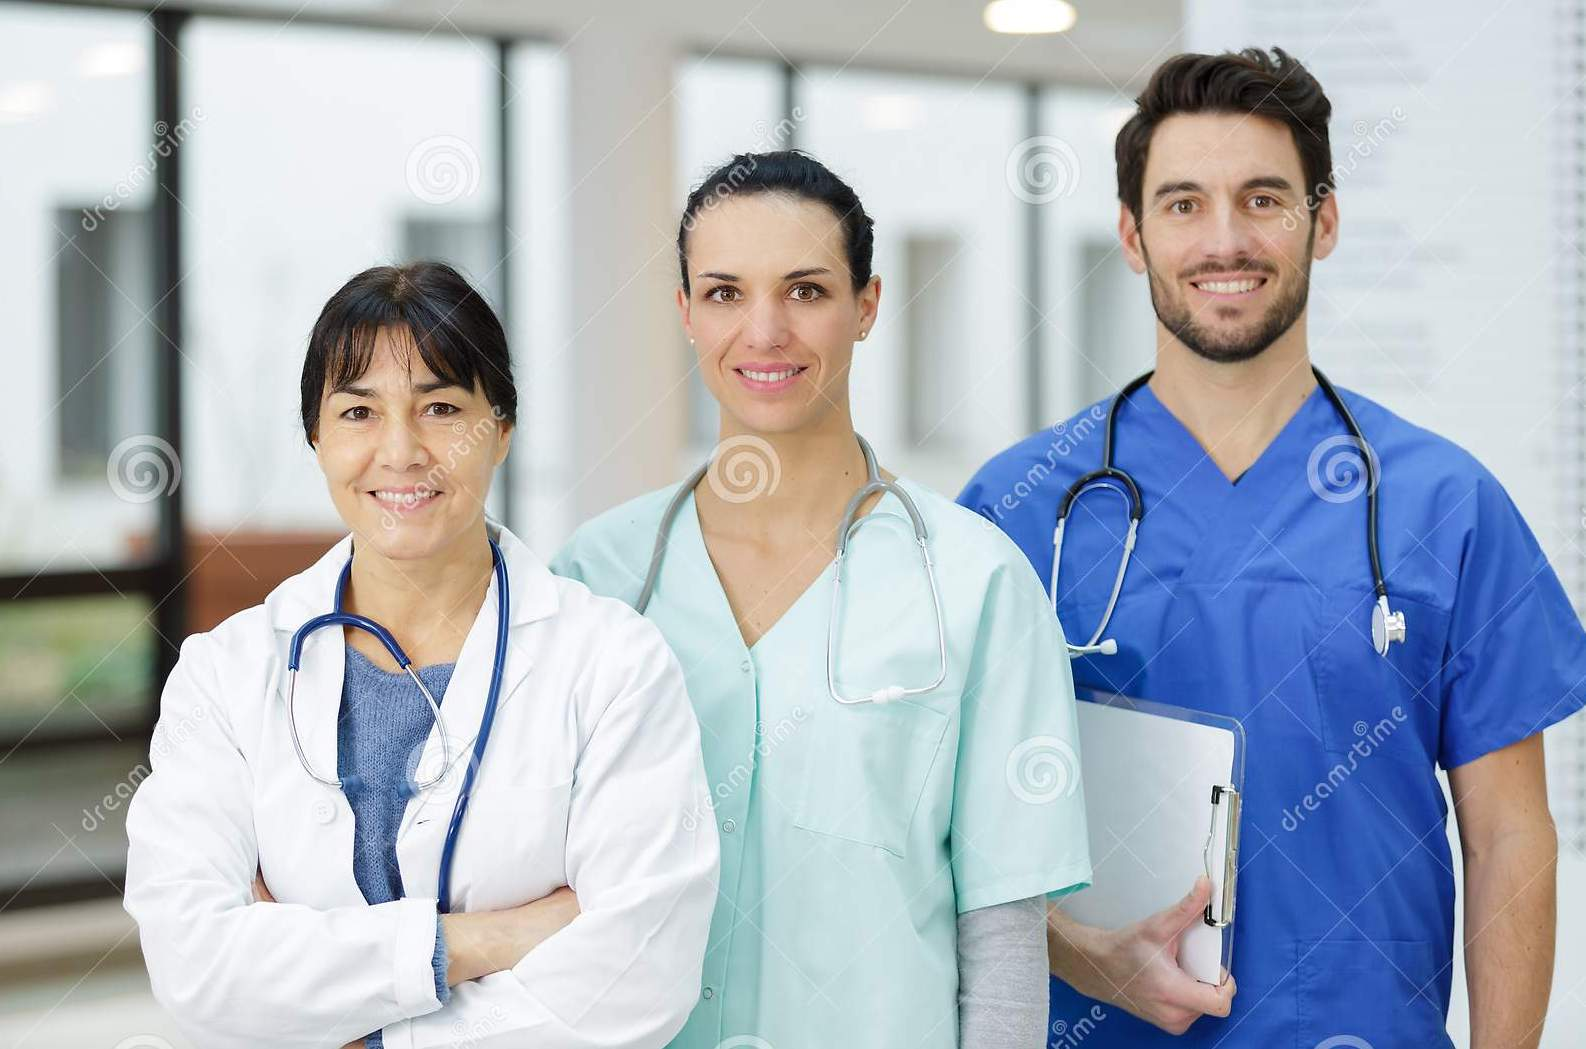 Medical Practioners